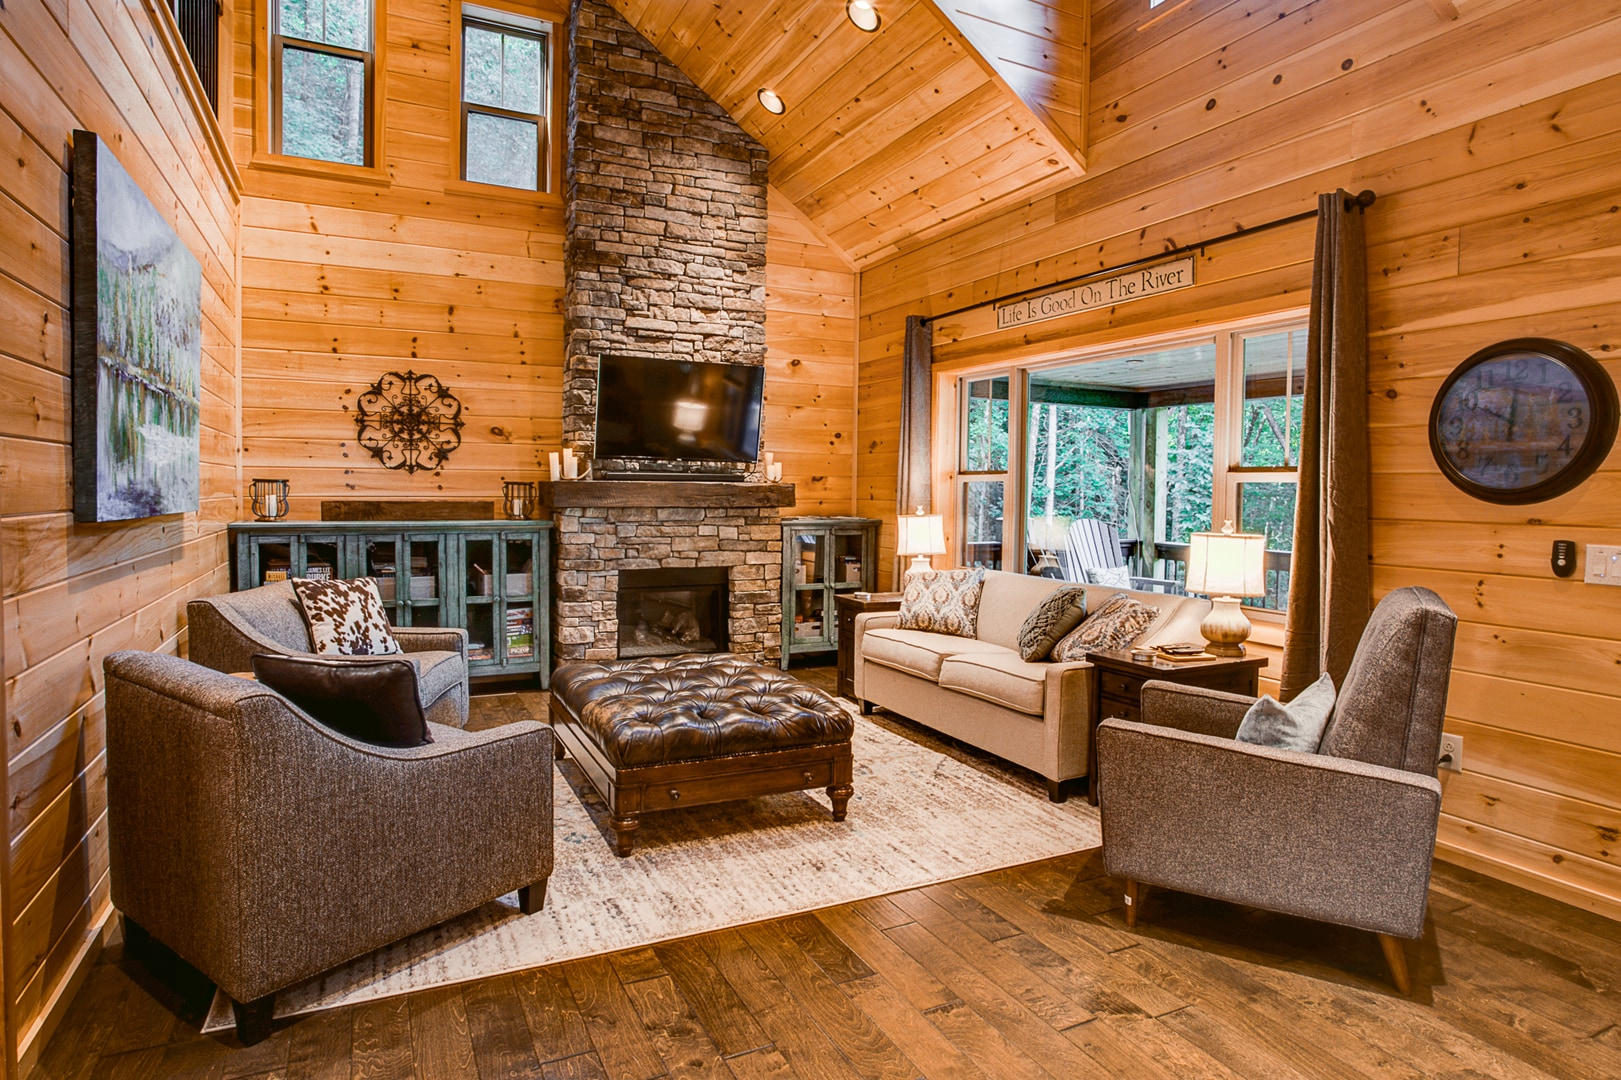 Extraordinary Cabin with Upscale Craftmanship and Unique Amenities